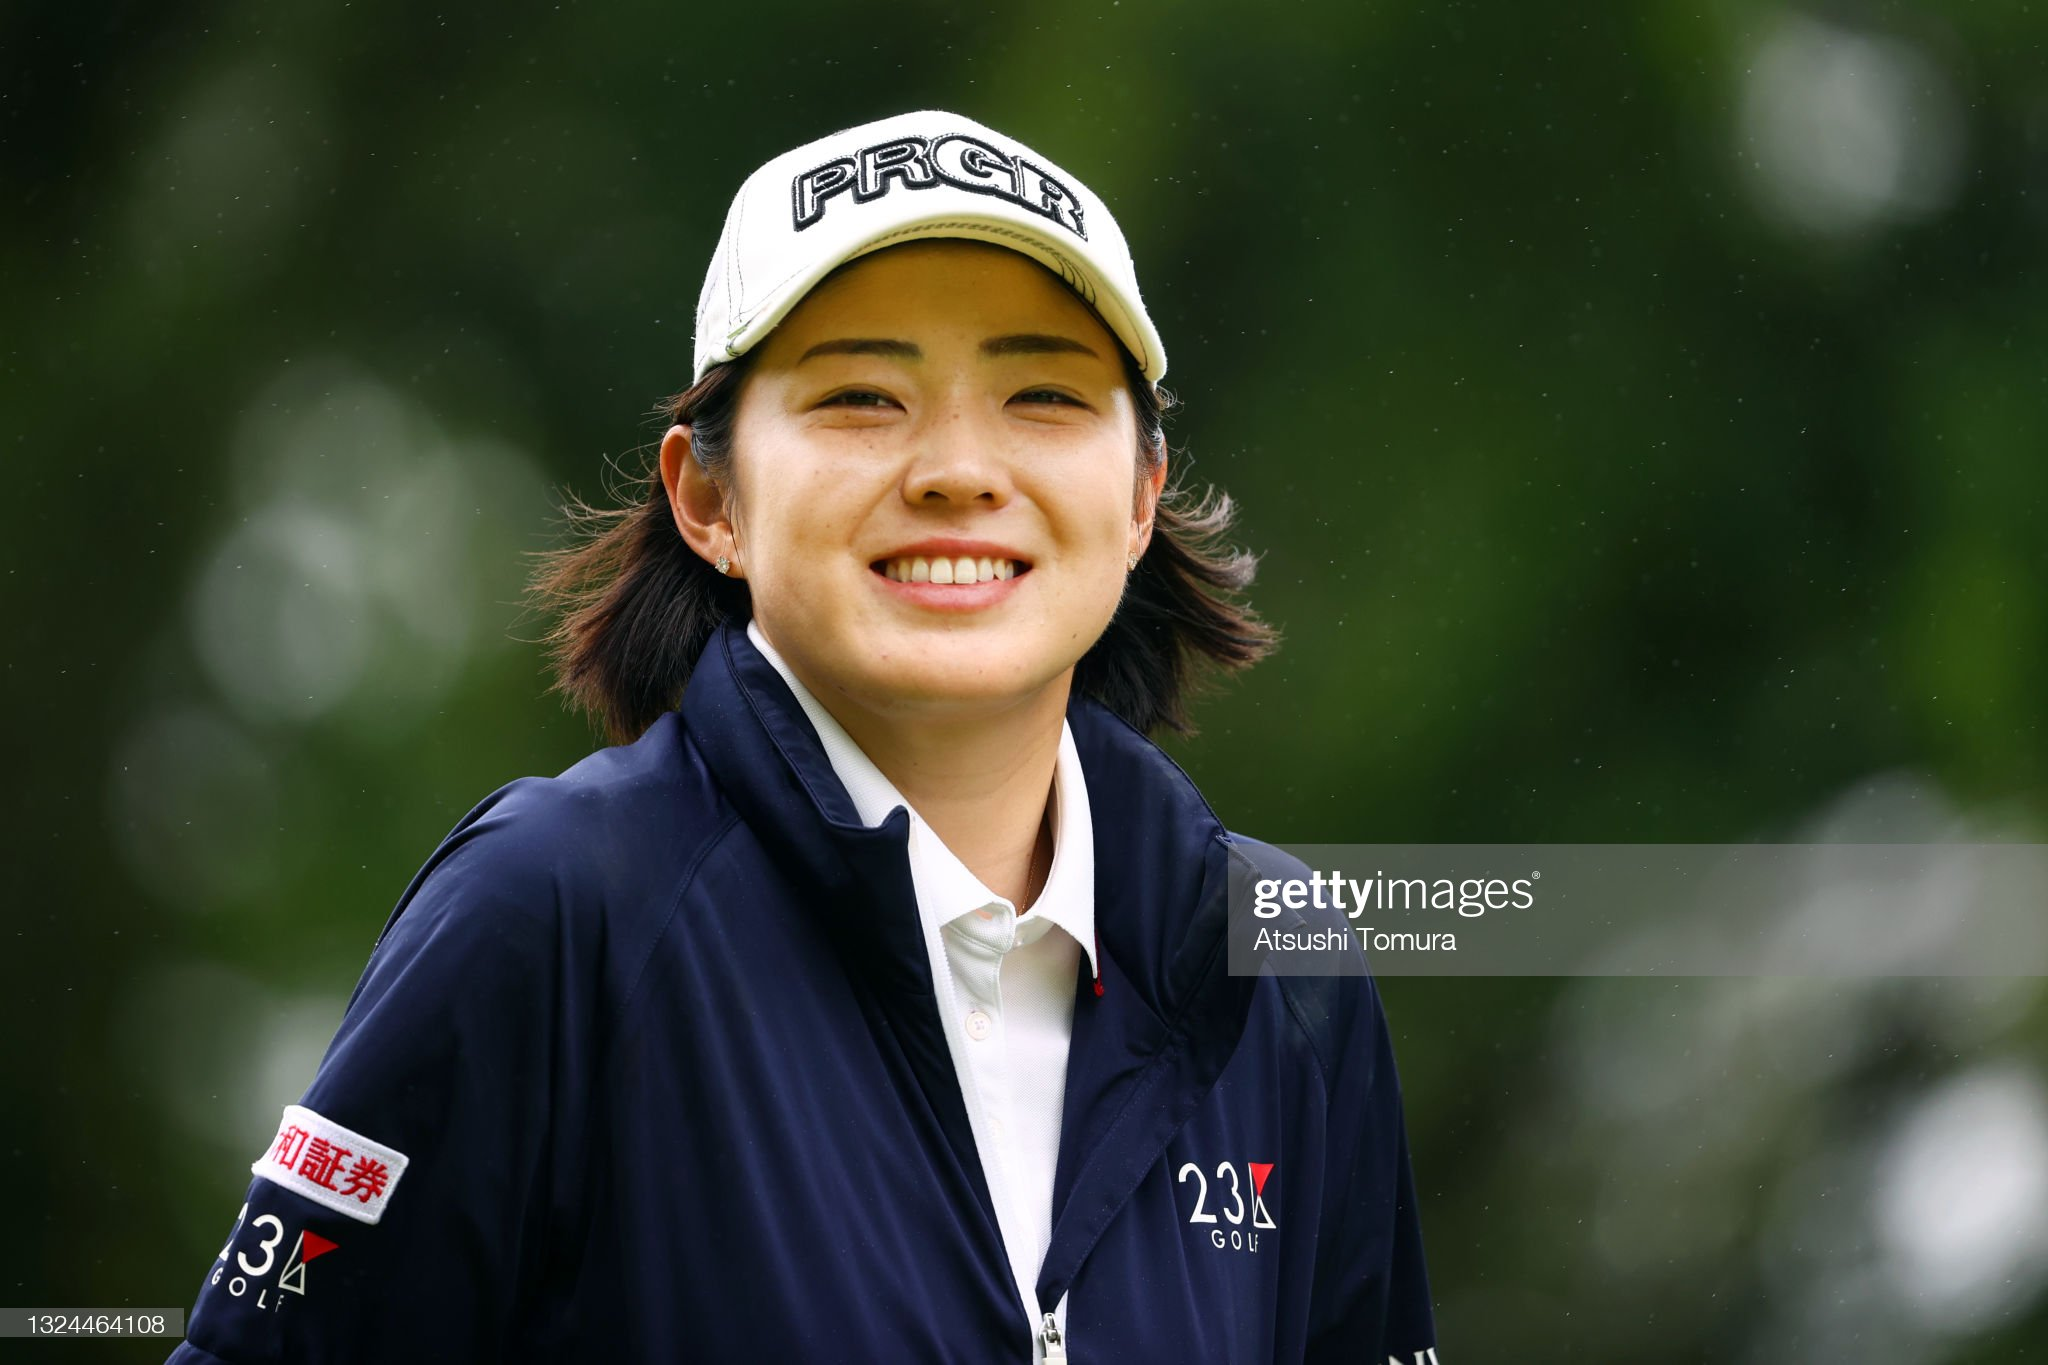 https://media.gettyimages.com/photos/rie-tsuji-of-japan-smiles-on-the-2nd-hole-during-the-final-round-of-picture-id1324464108?s=2048x2048